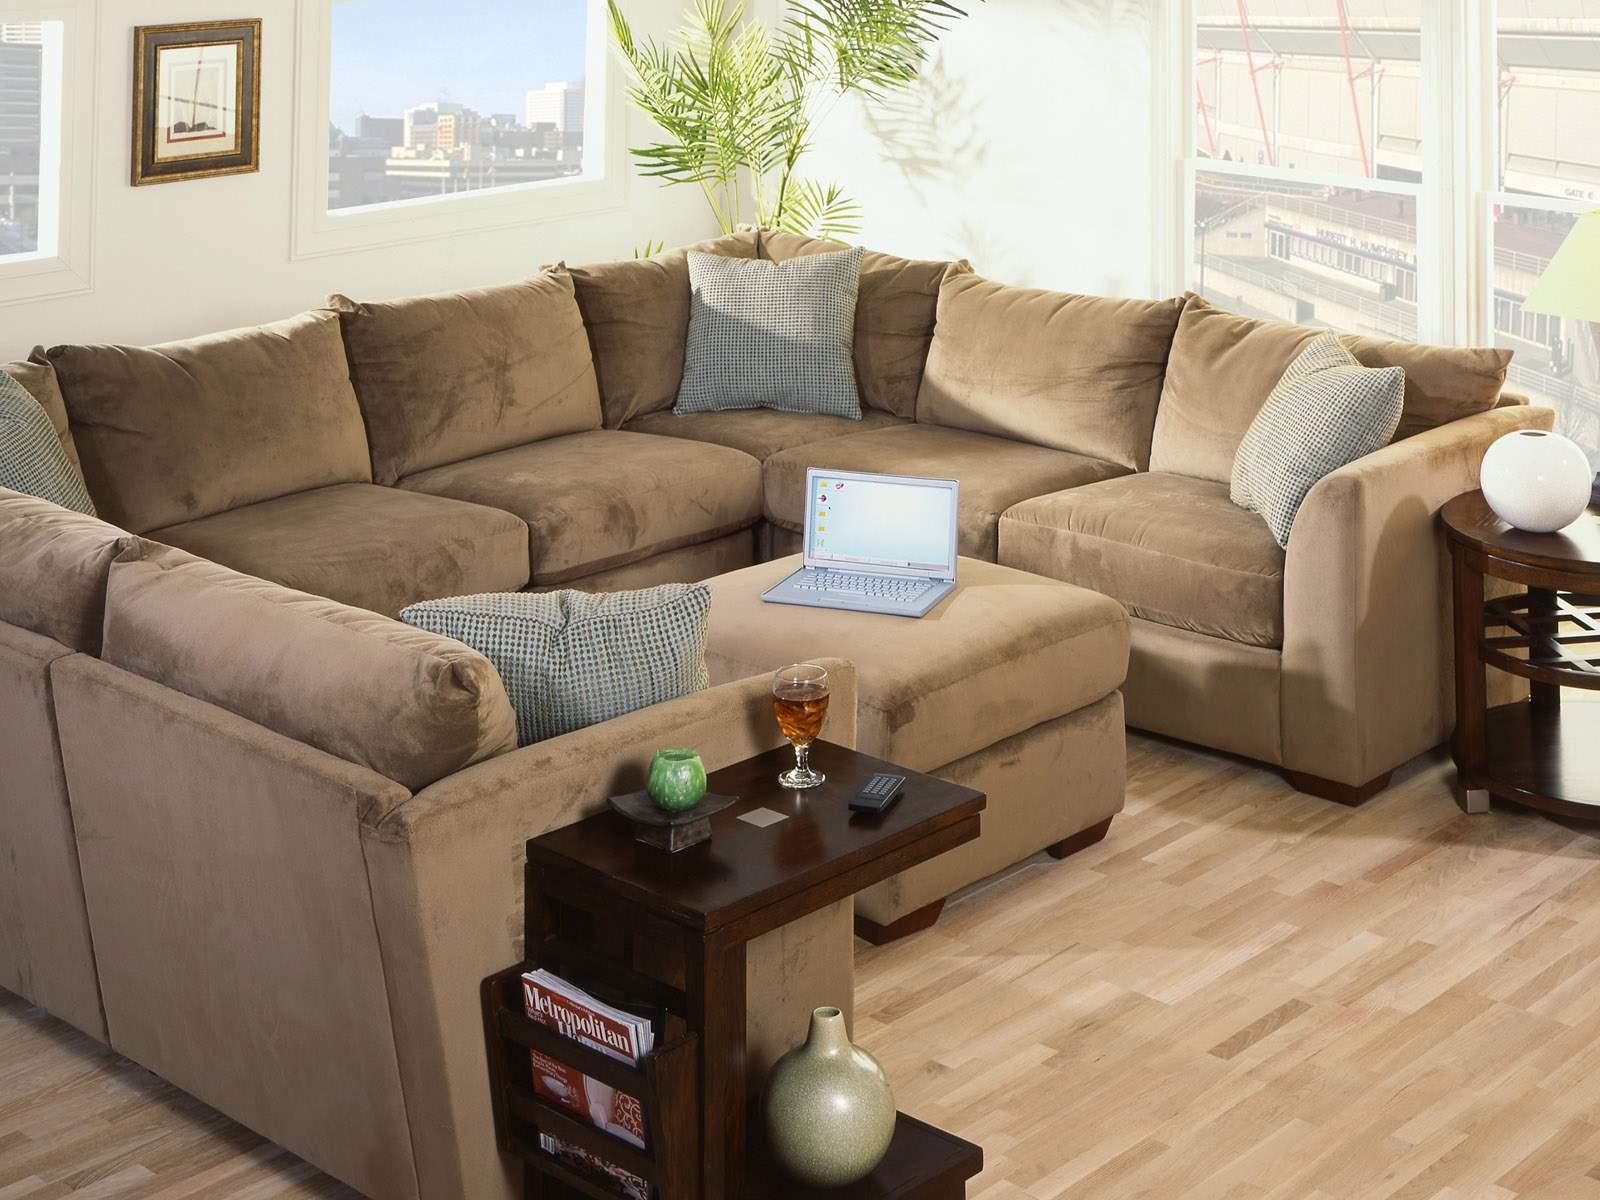 Interior design ideas for Brown couch decorating ideas